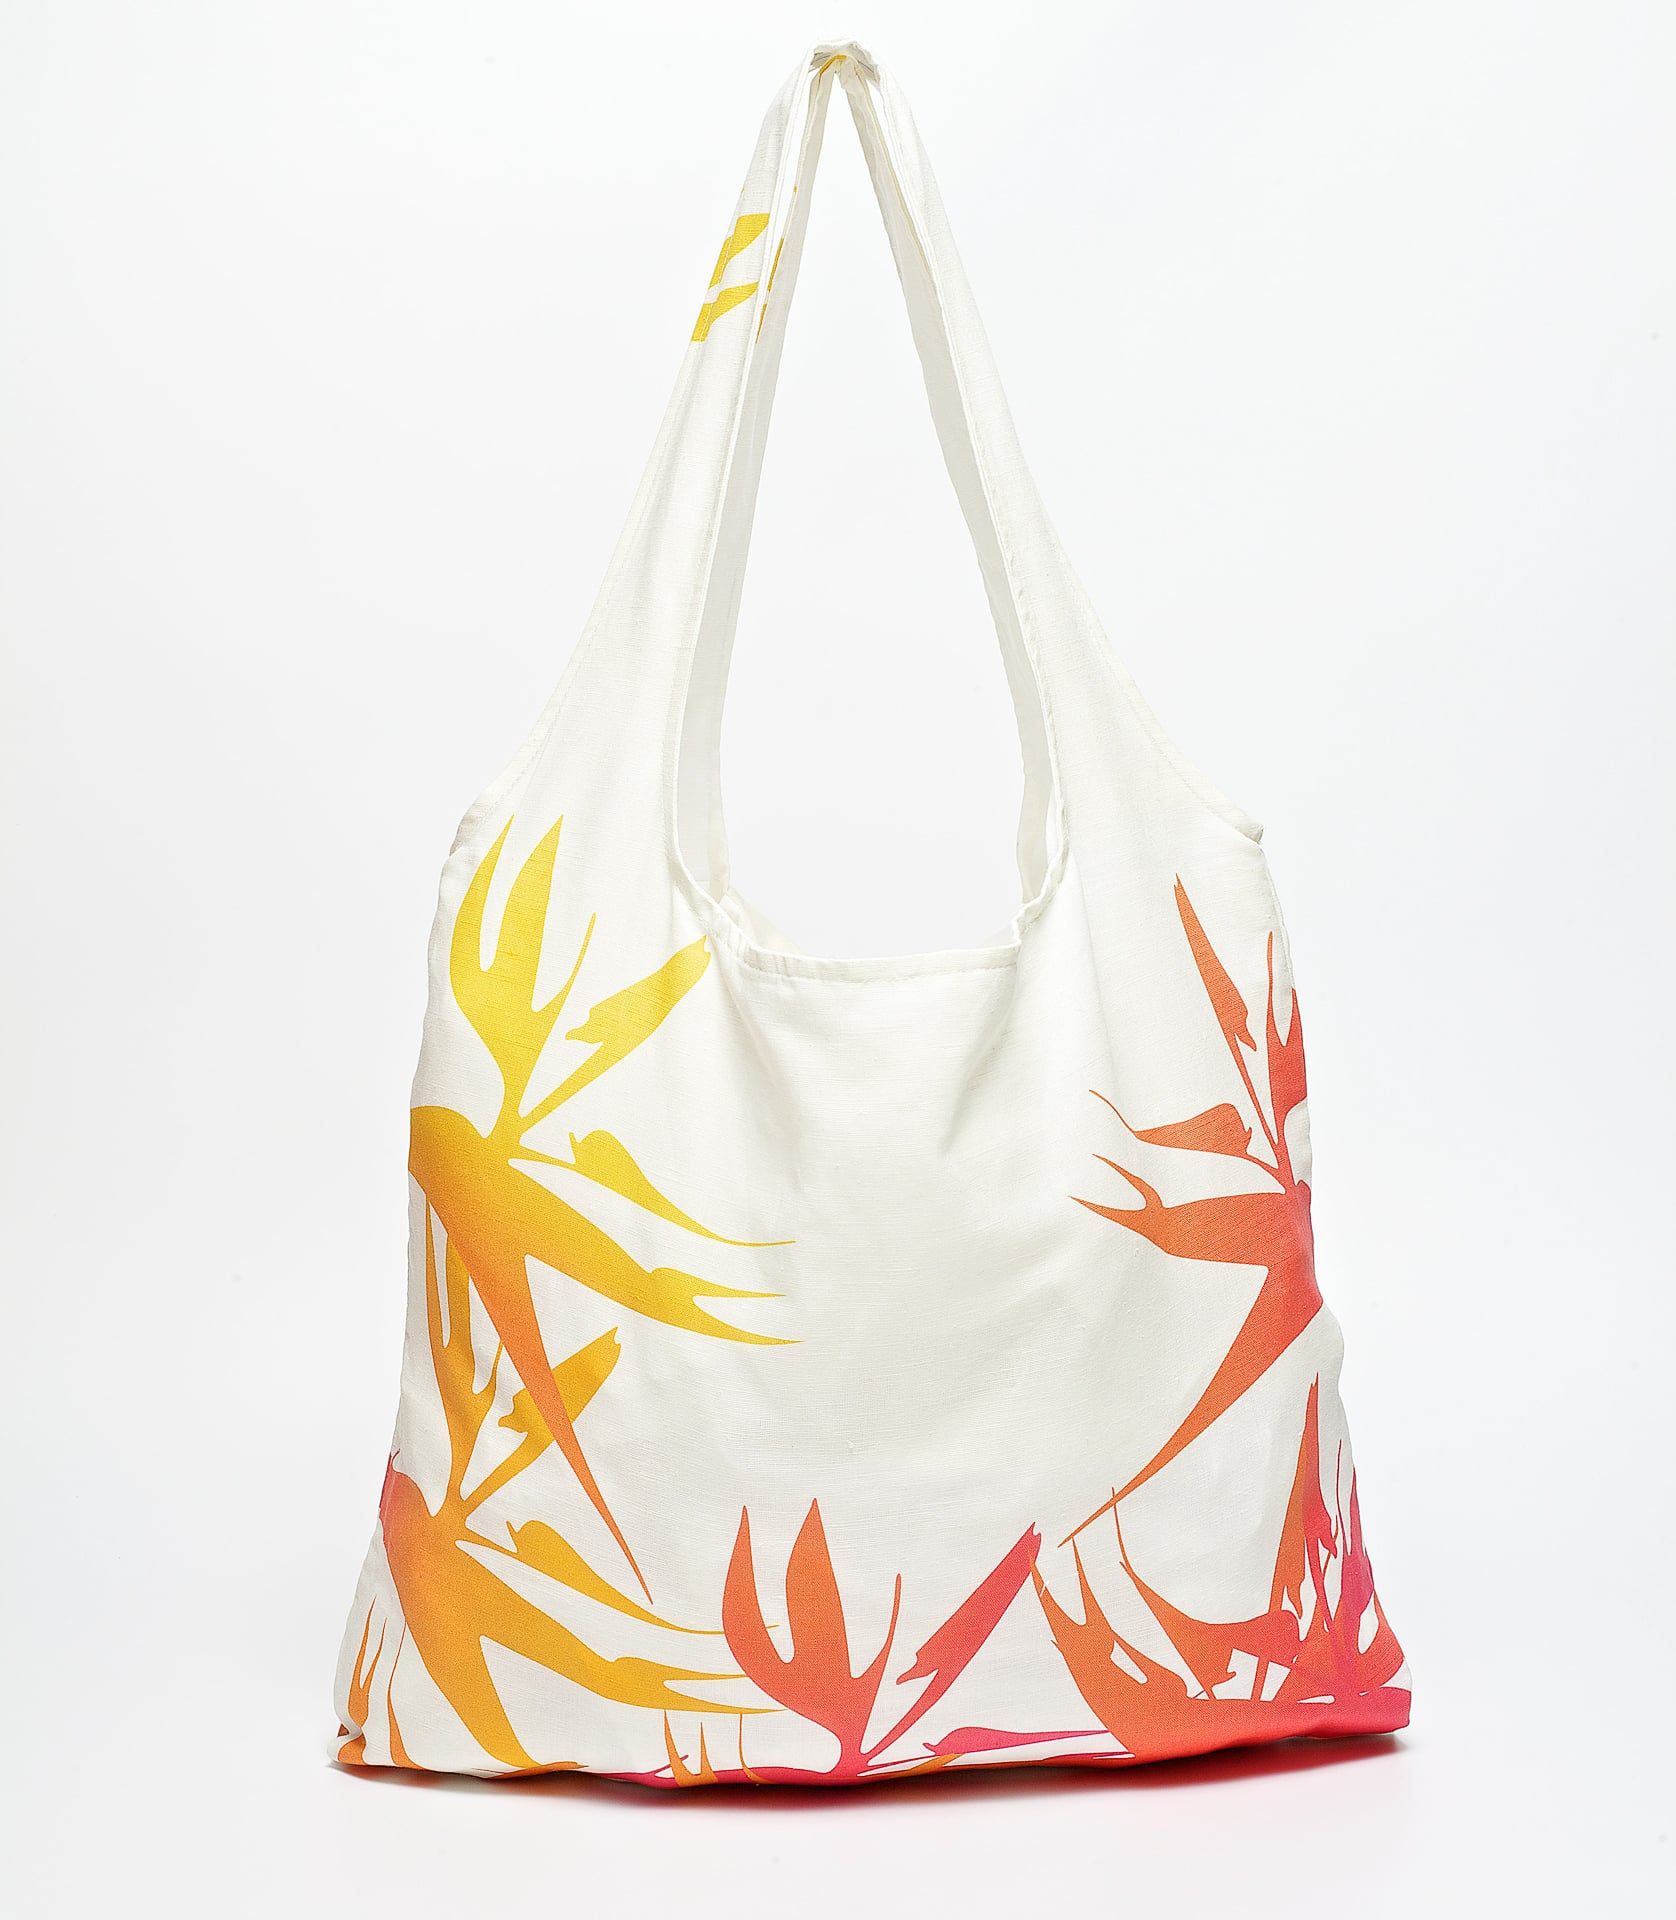 Strelitzia_frontal_shoppingbag